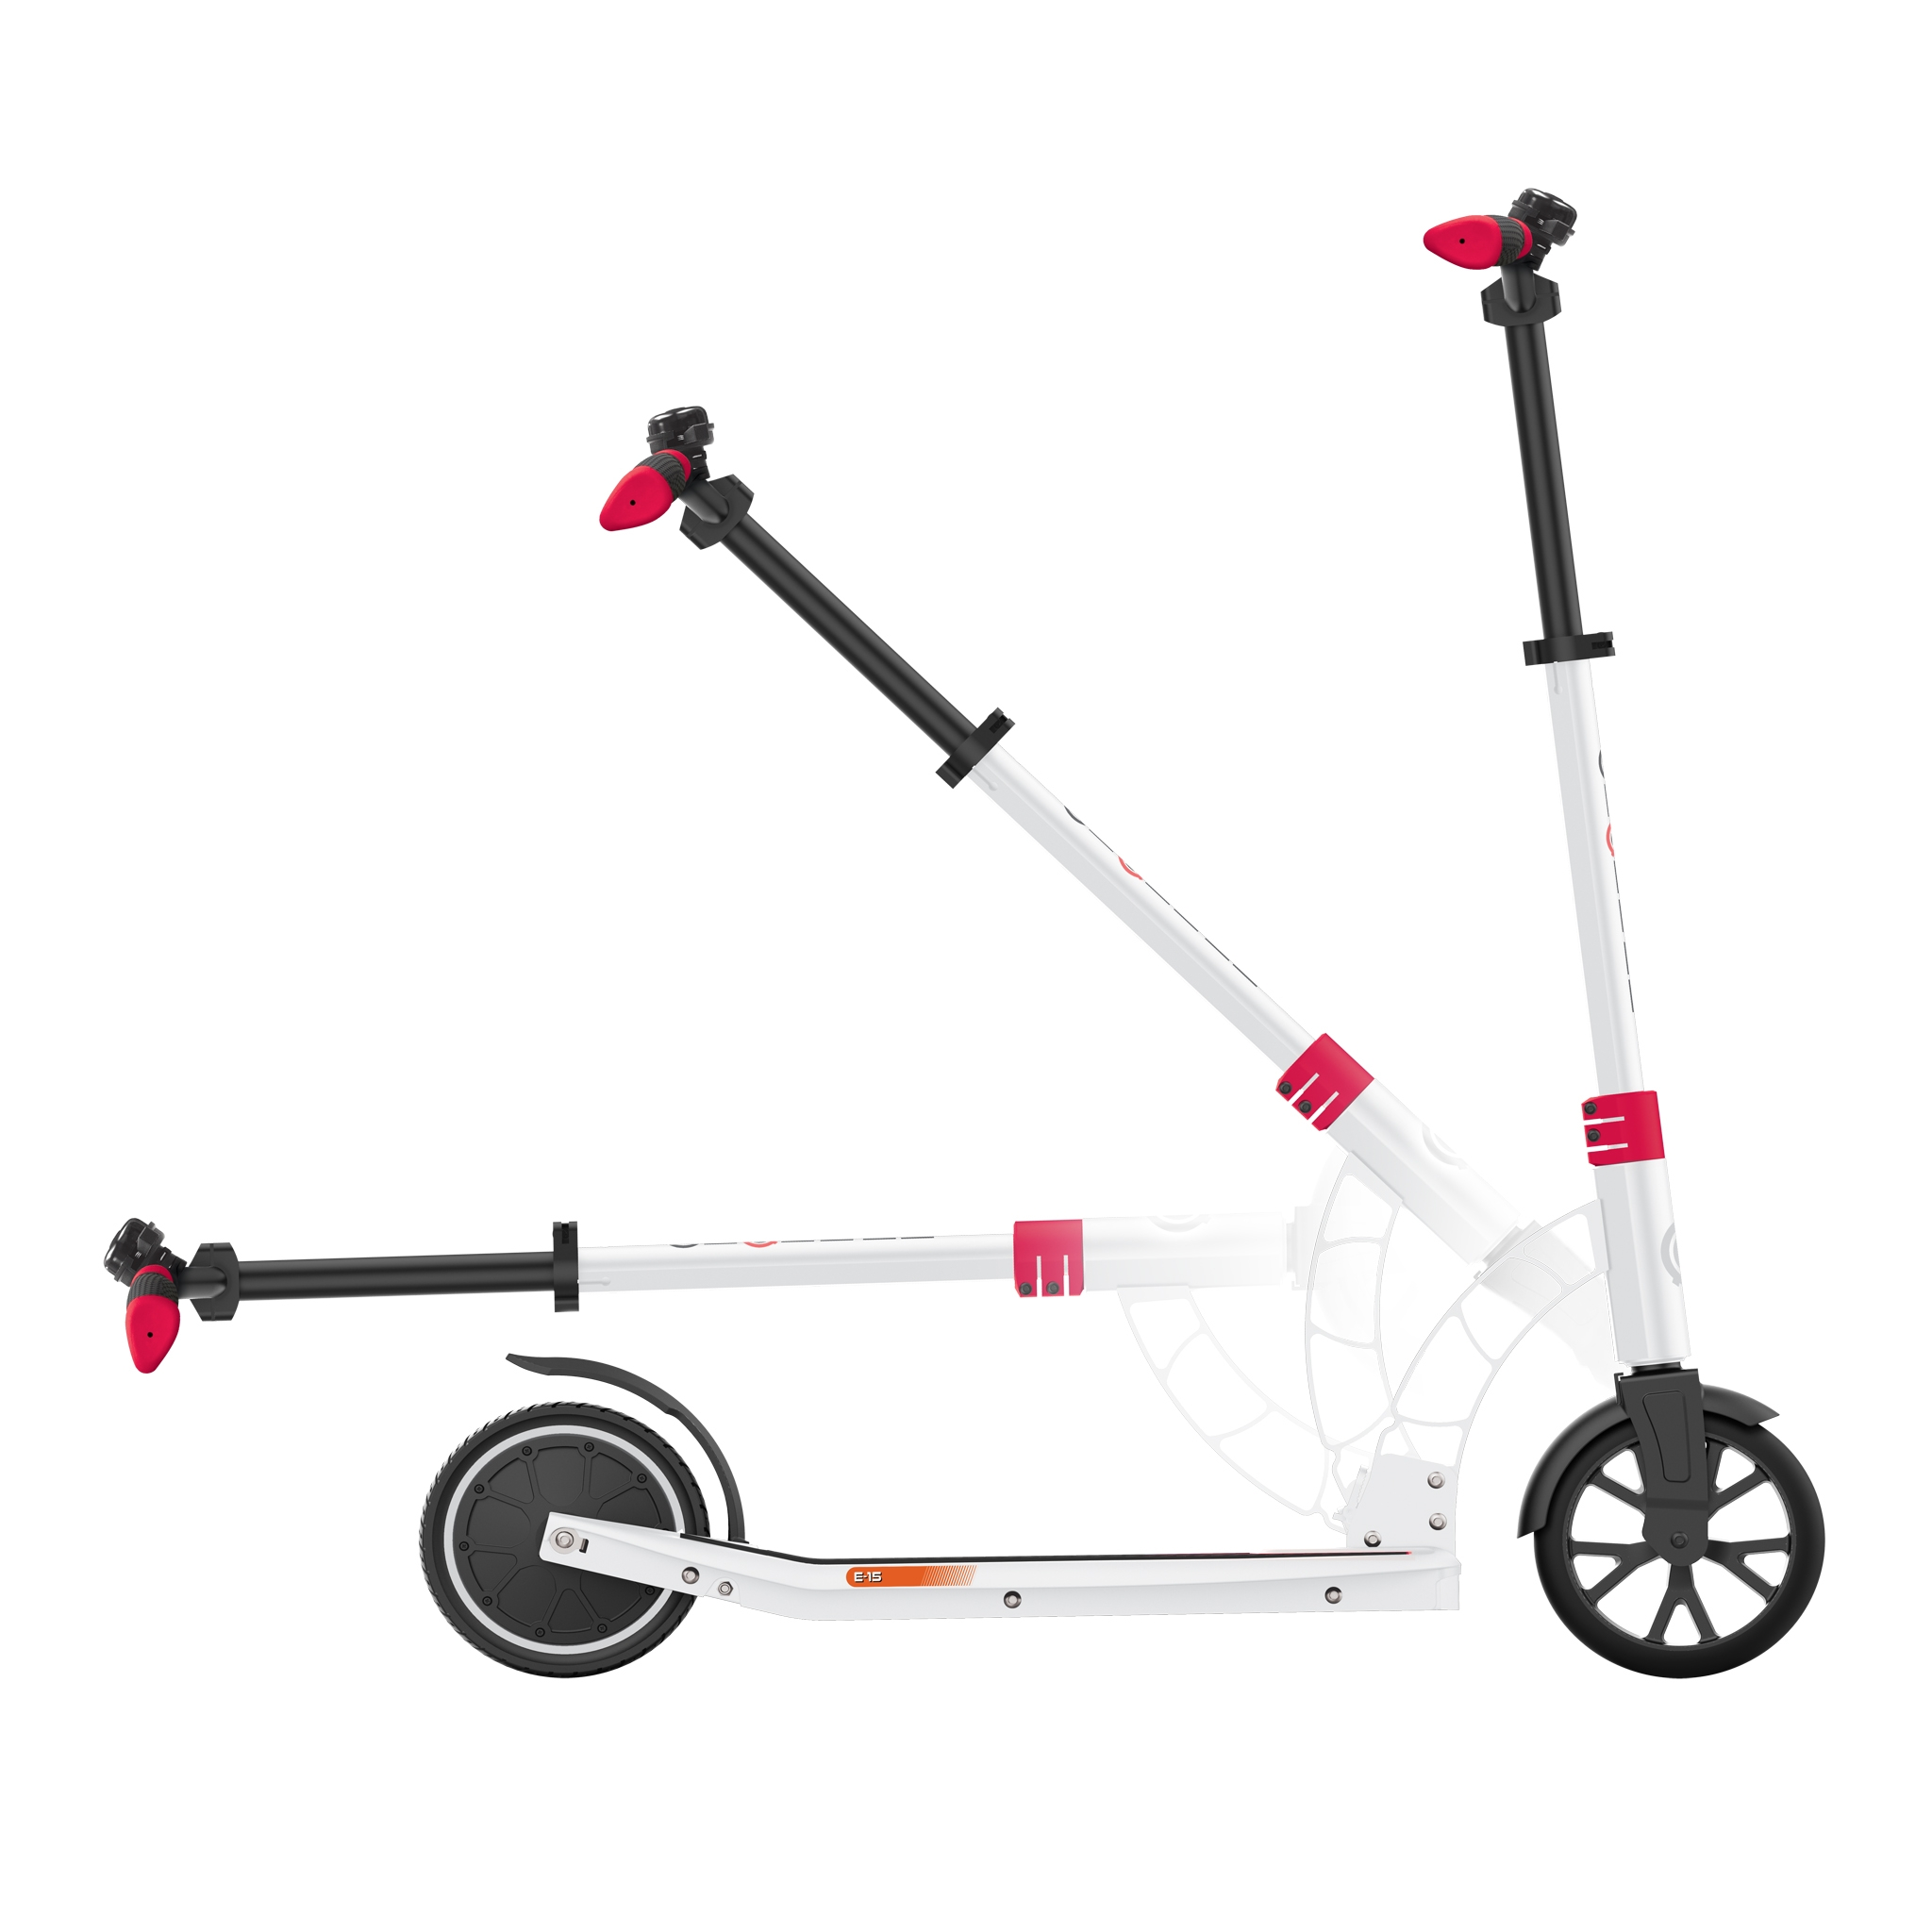 Globber-ONE-K-E-MOTION-15-electric-scooter-for-teens-and-young-adults-robust-foldable-e-scooter-white-red